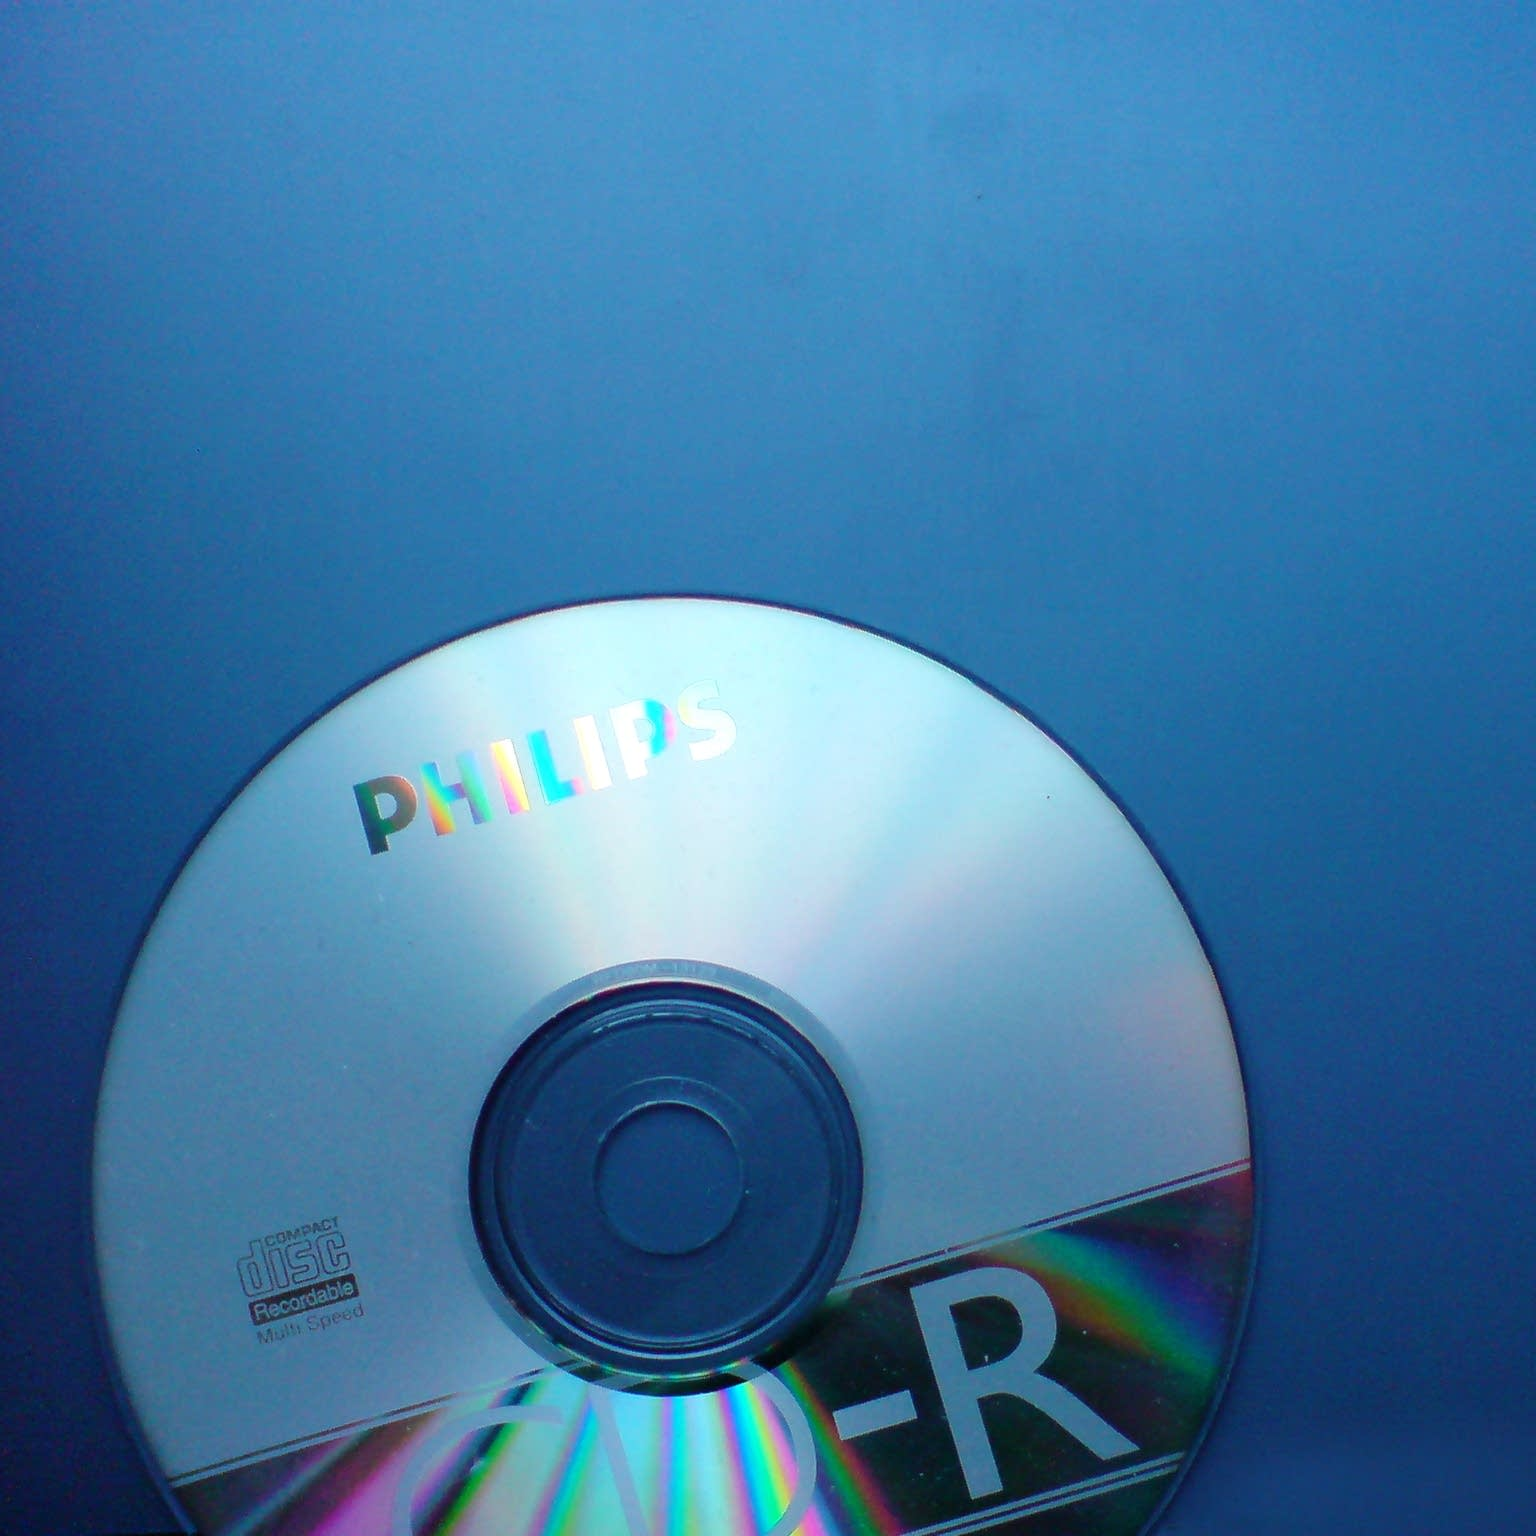 A recordable compact disc.